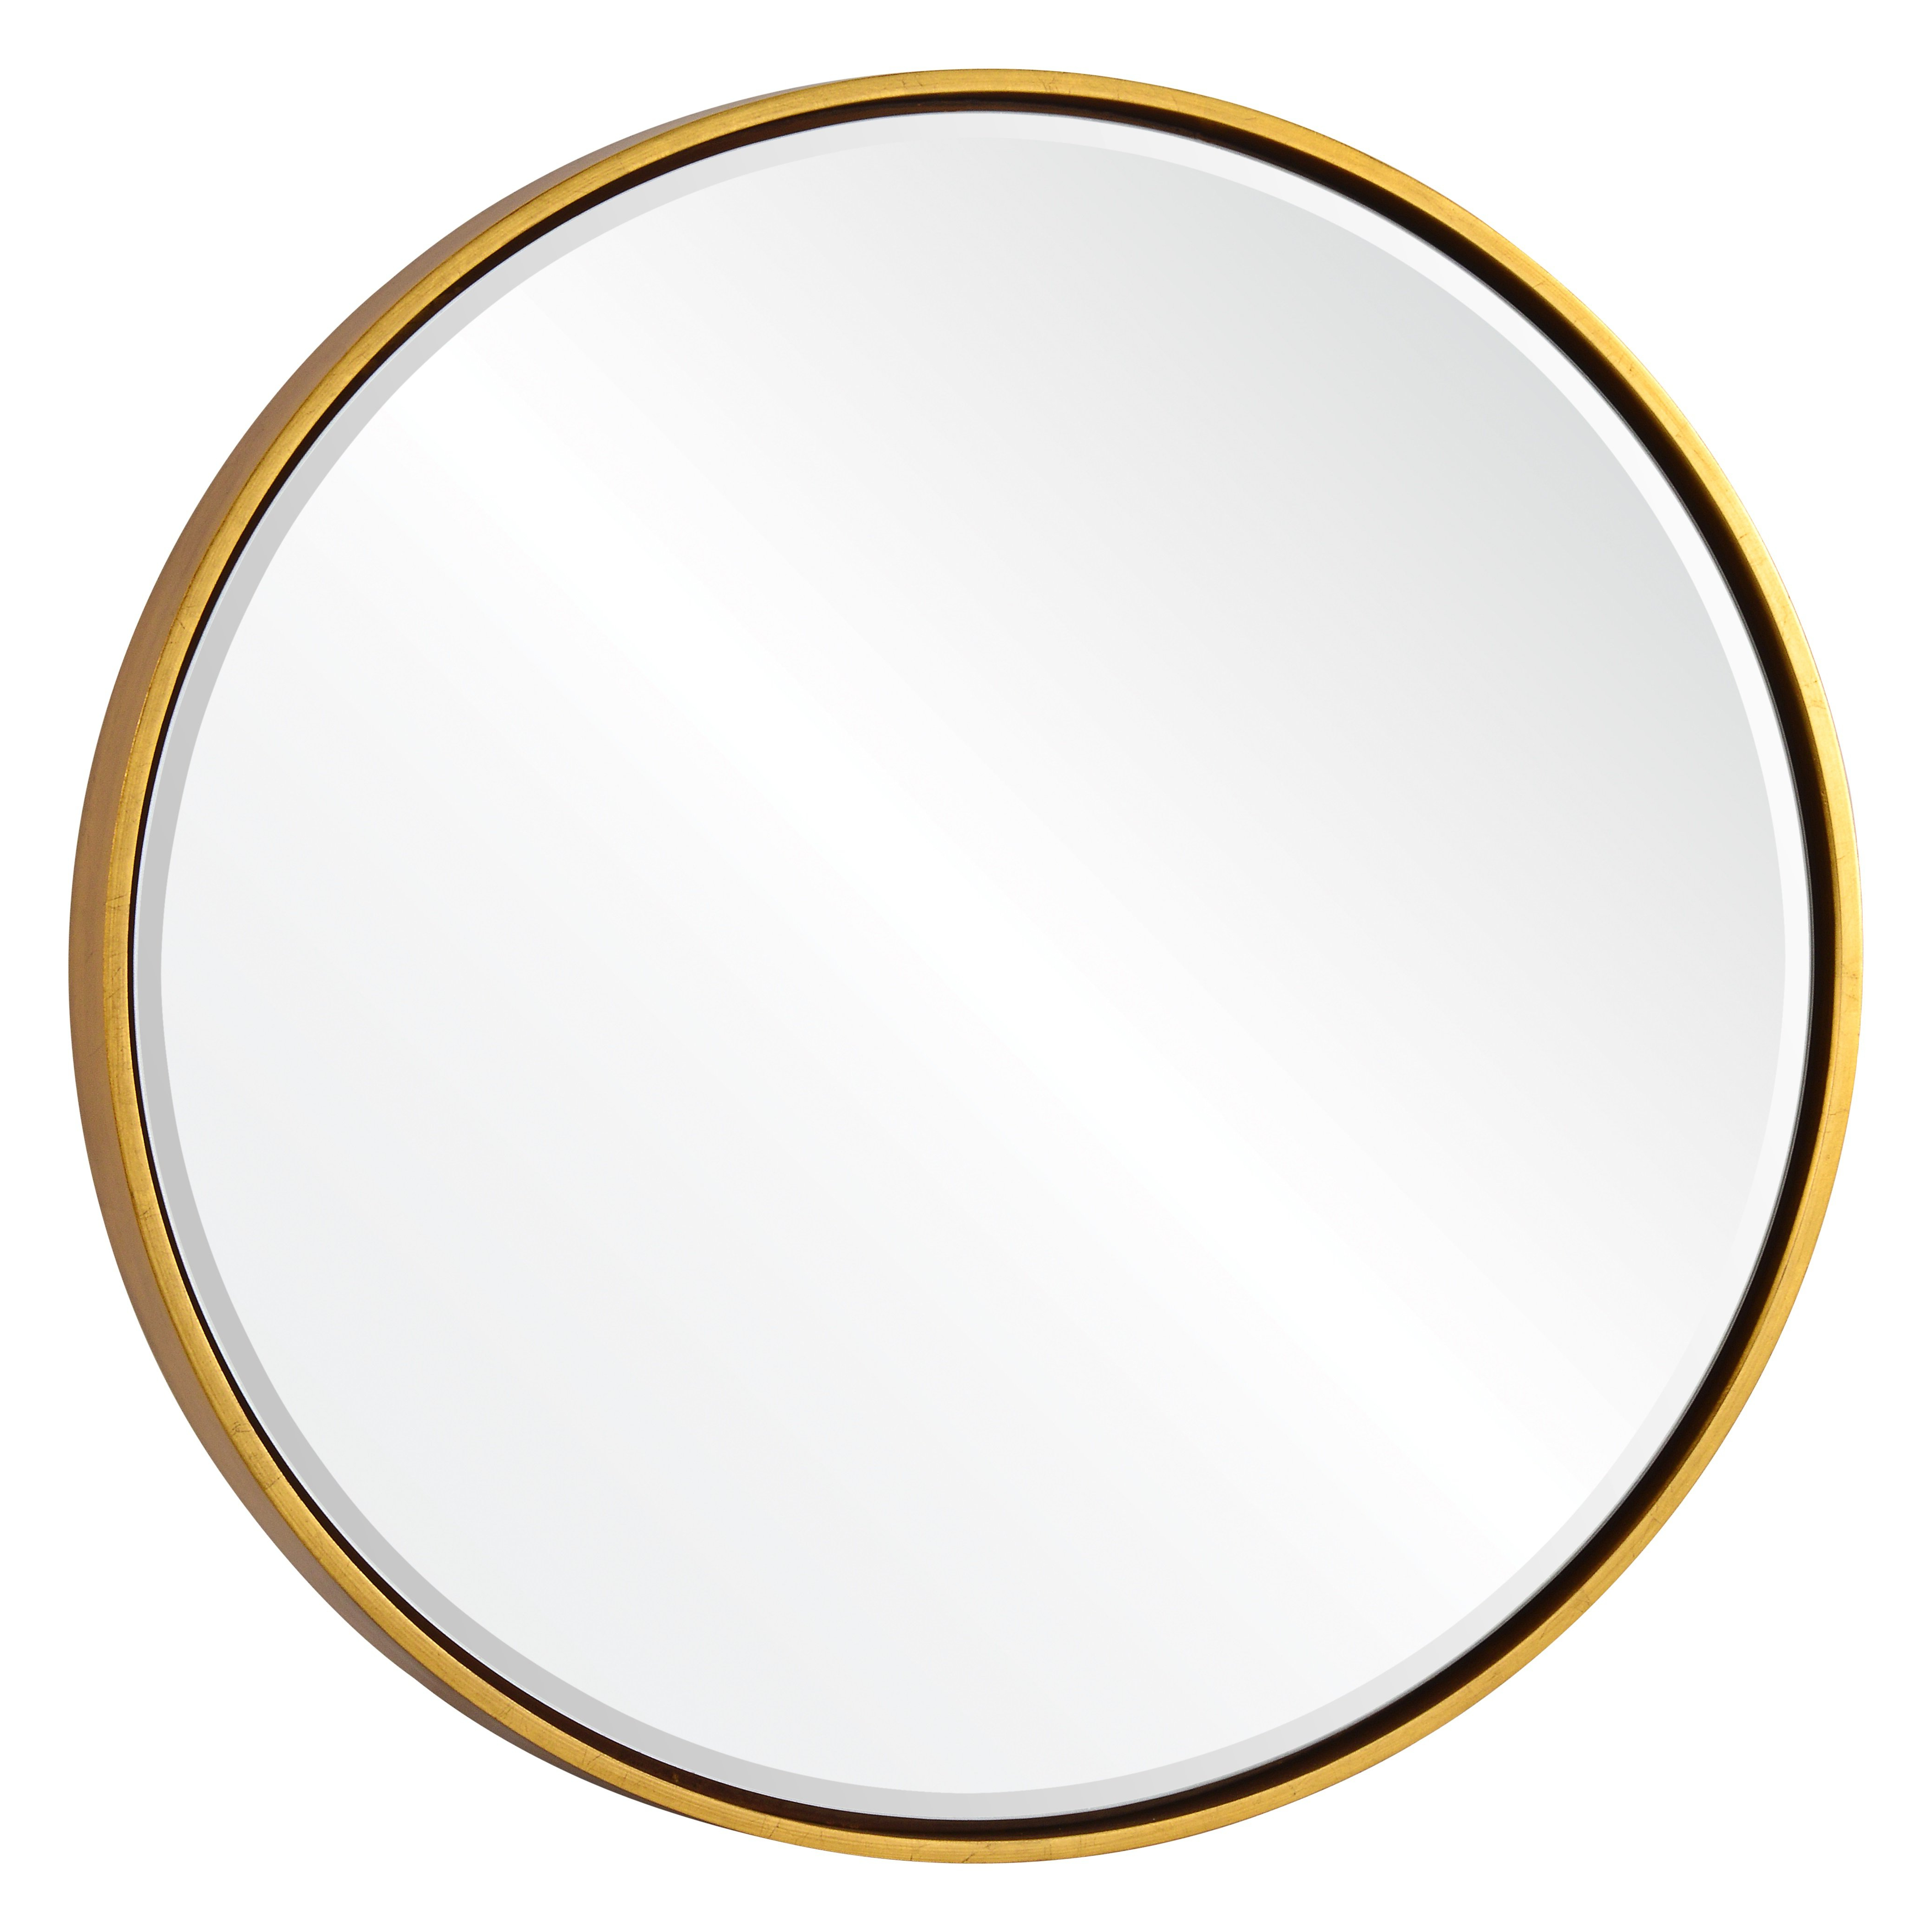 Most Recently Released Jamie Modern & Contemporary Beveled Wall Mirror With Regard To Modern & Contemporary Beveled Wall Mirrors (Gallery 14 of 20)